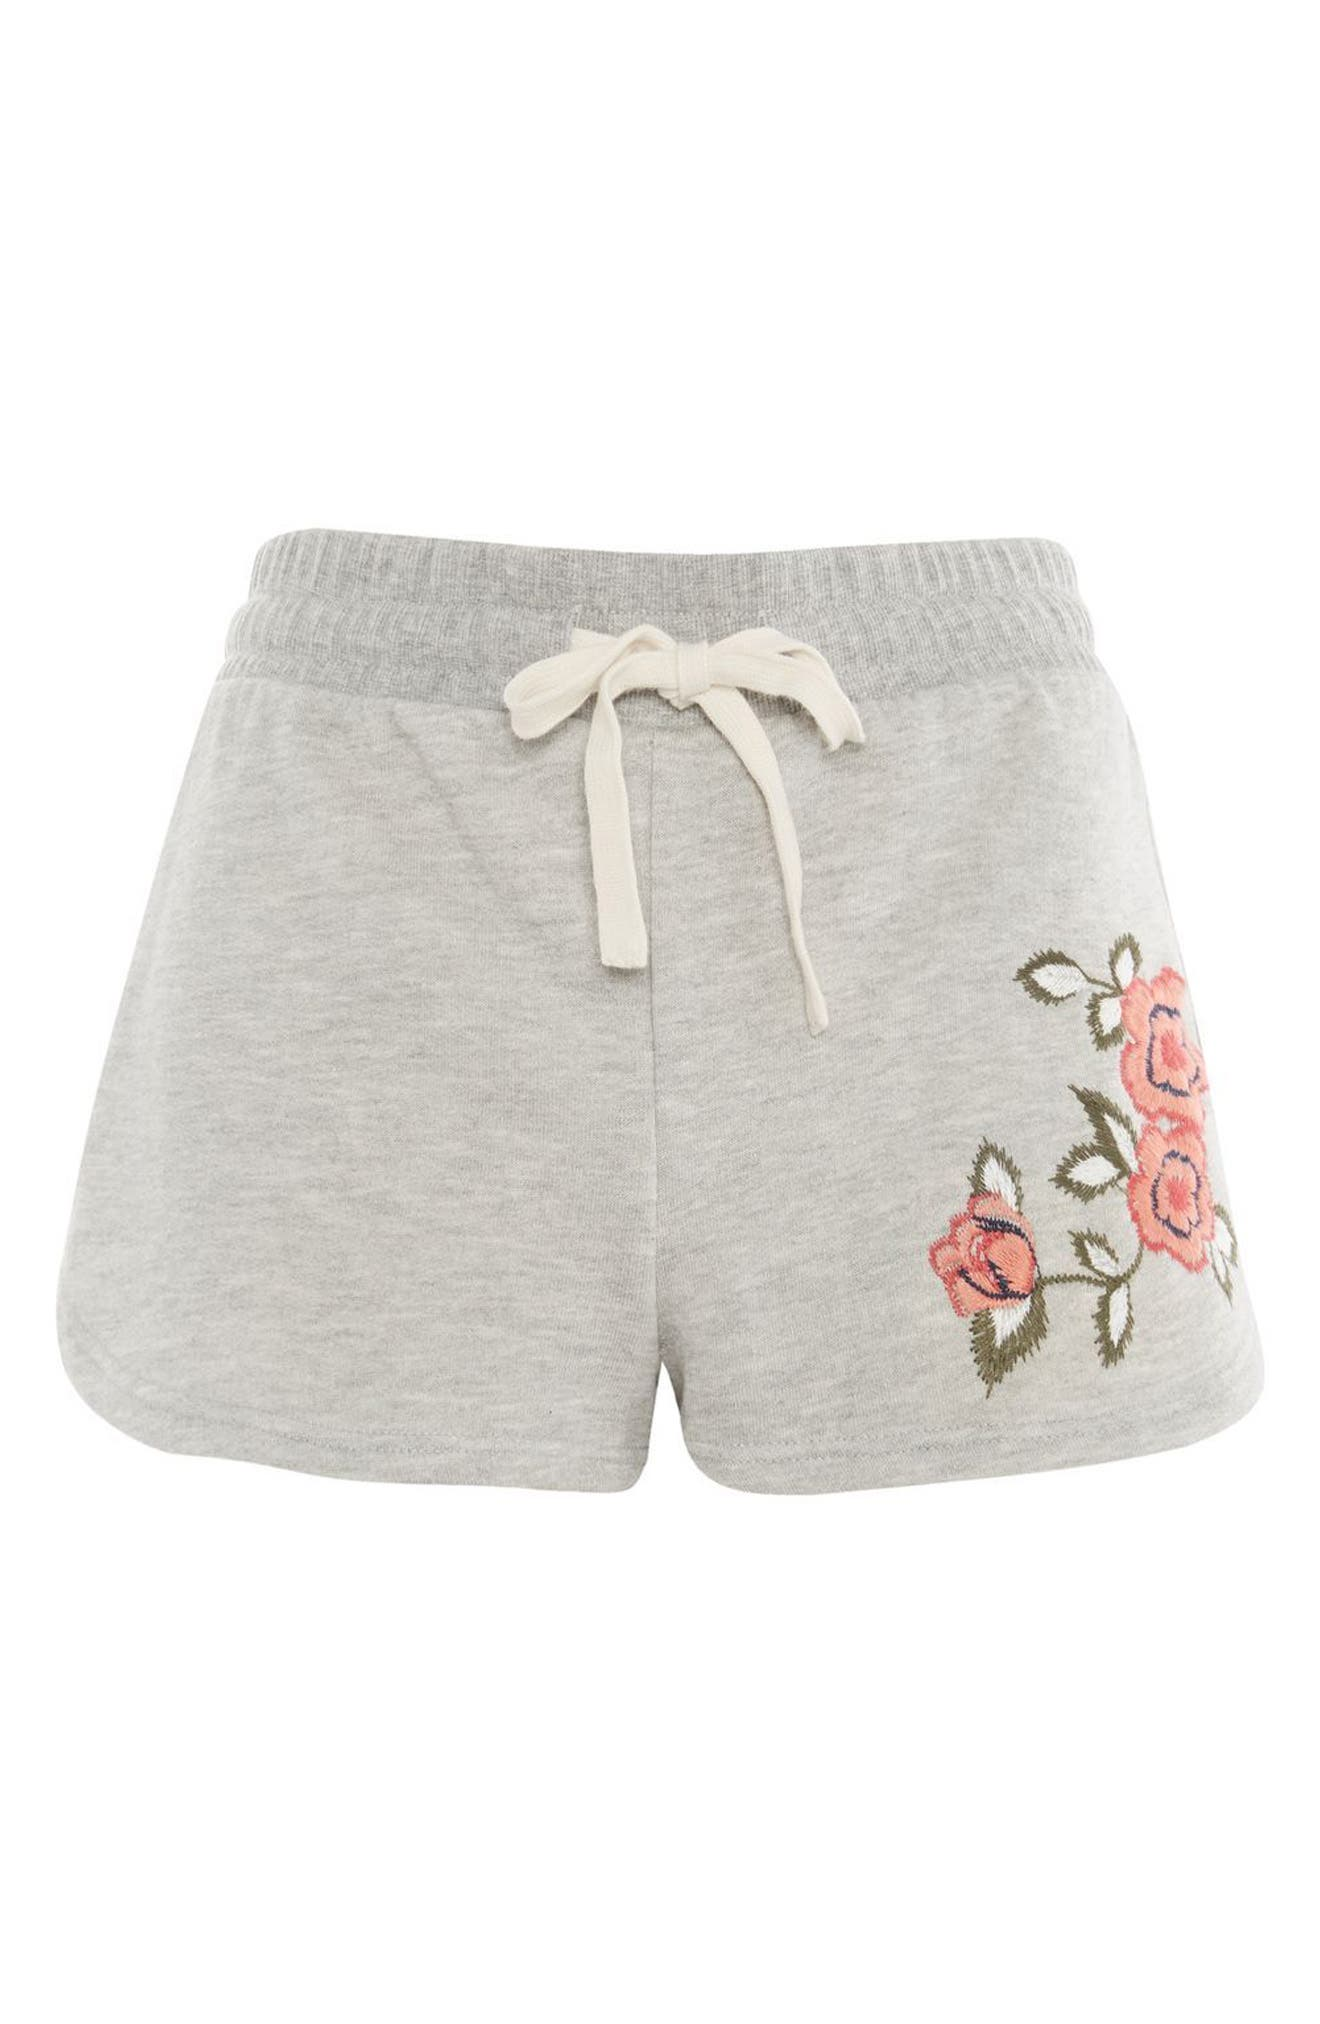 Floral Embroidered Lounge Shorts,                             Alternate thumbnail 3, color,                             020